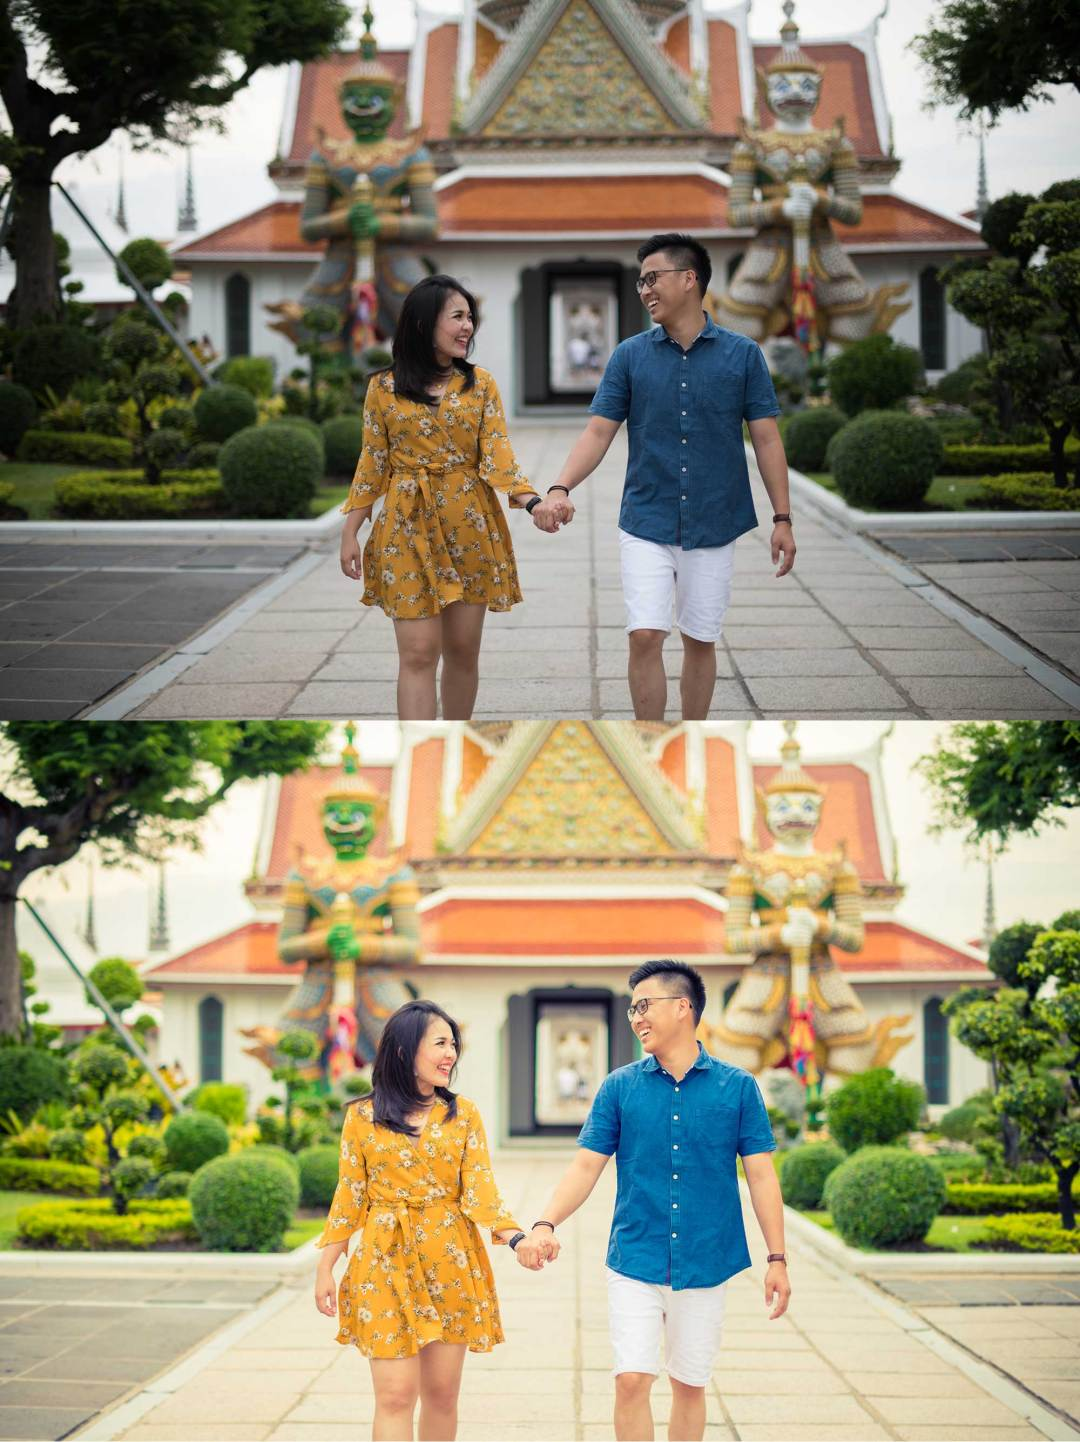 NET-Photography | Thailand Wedding Photographer